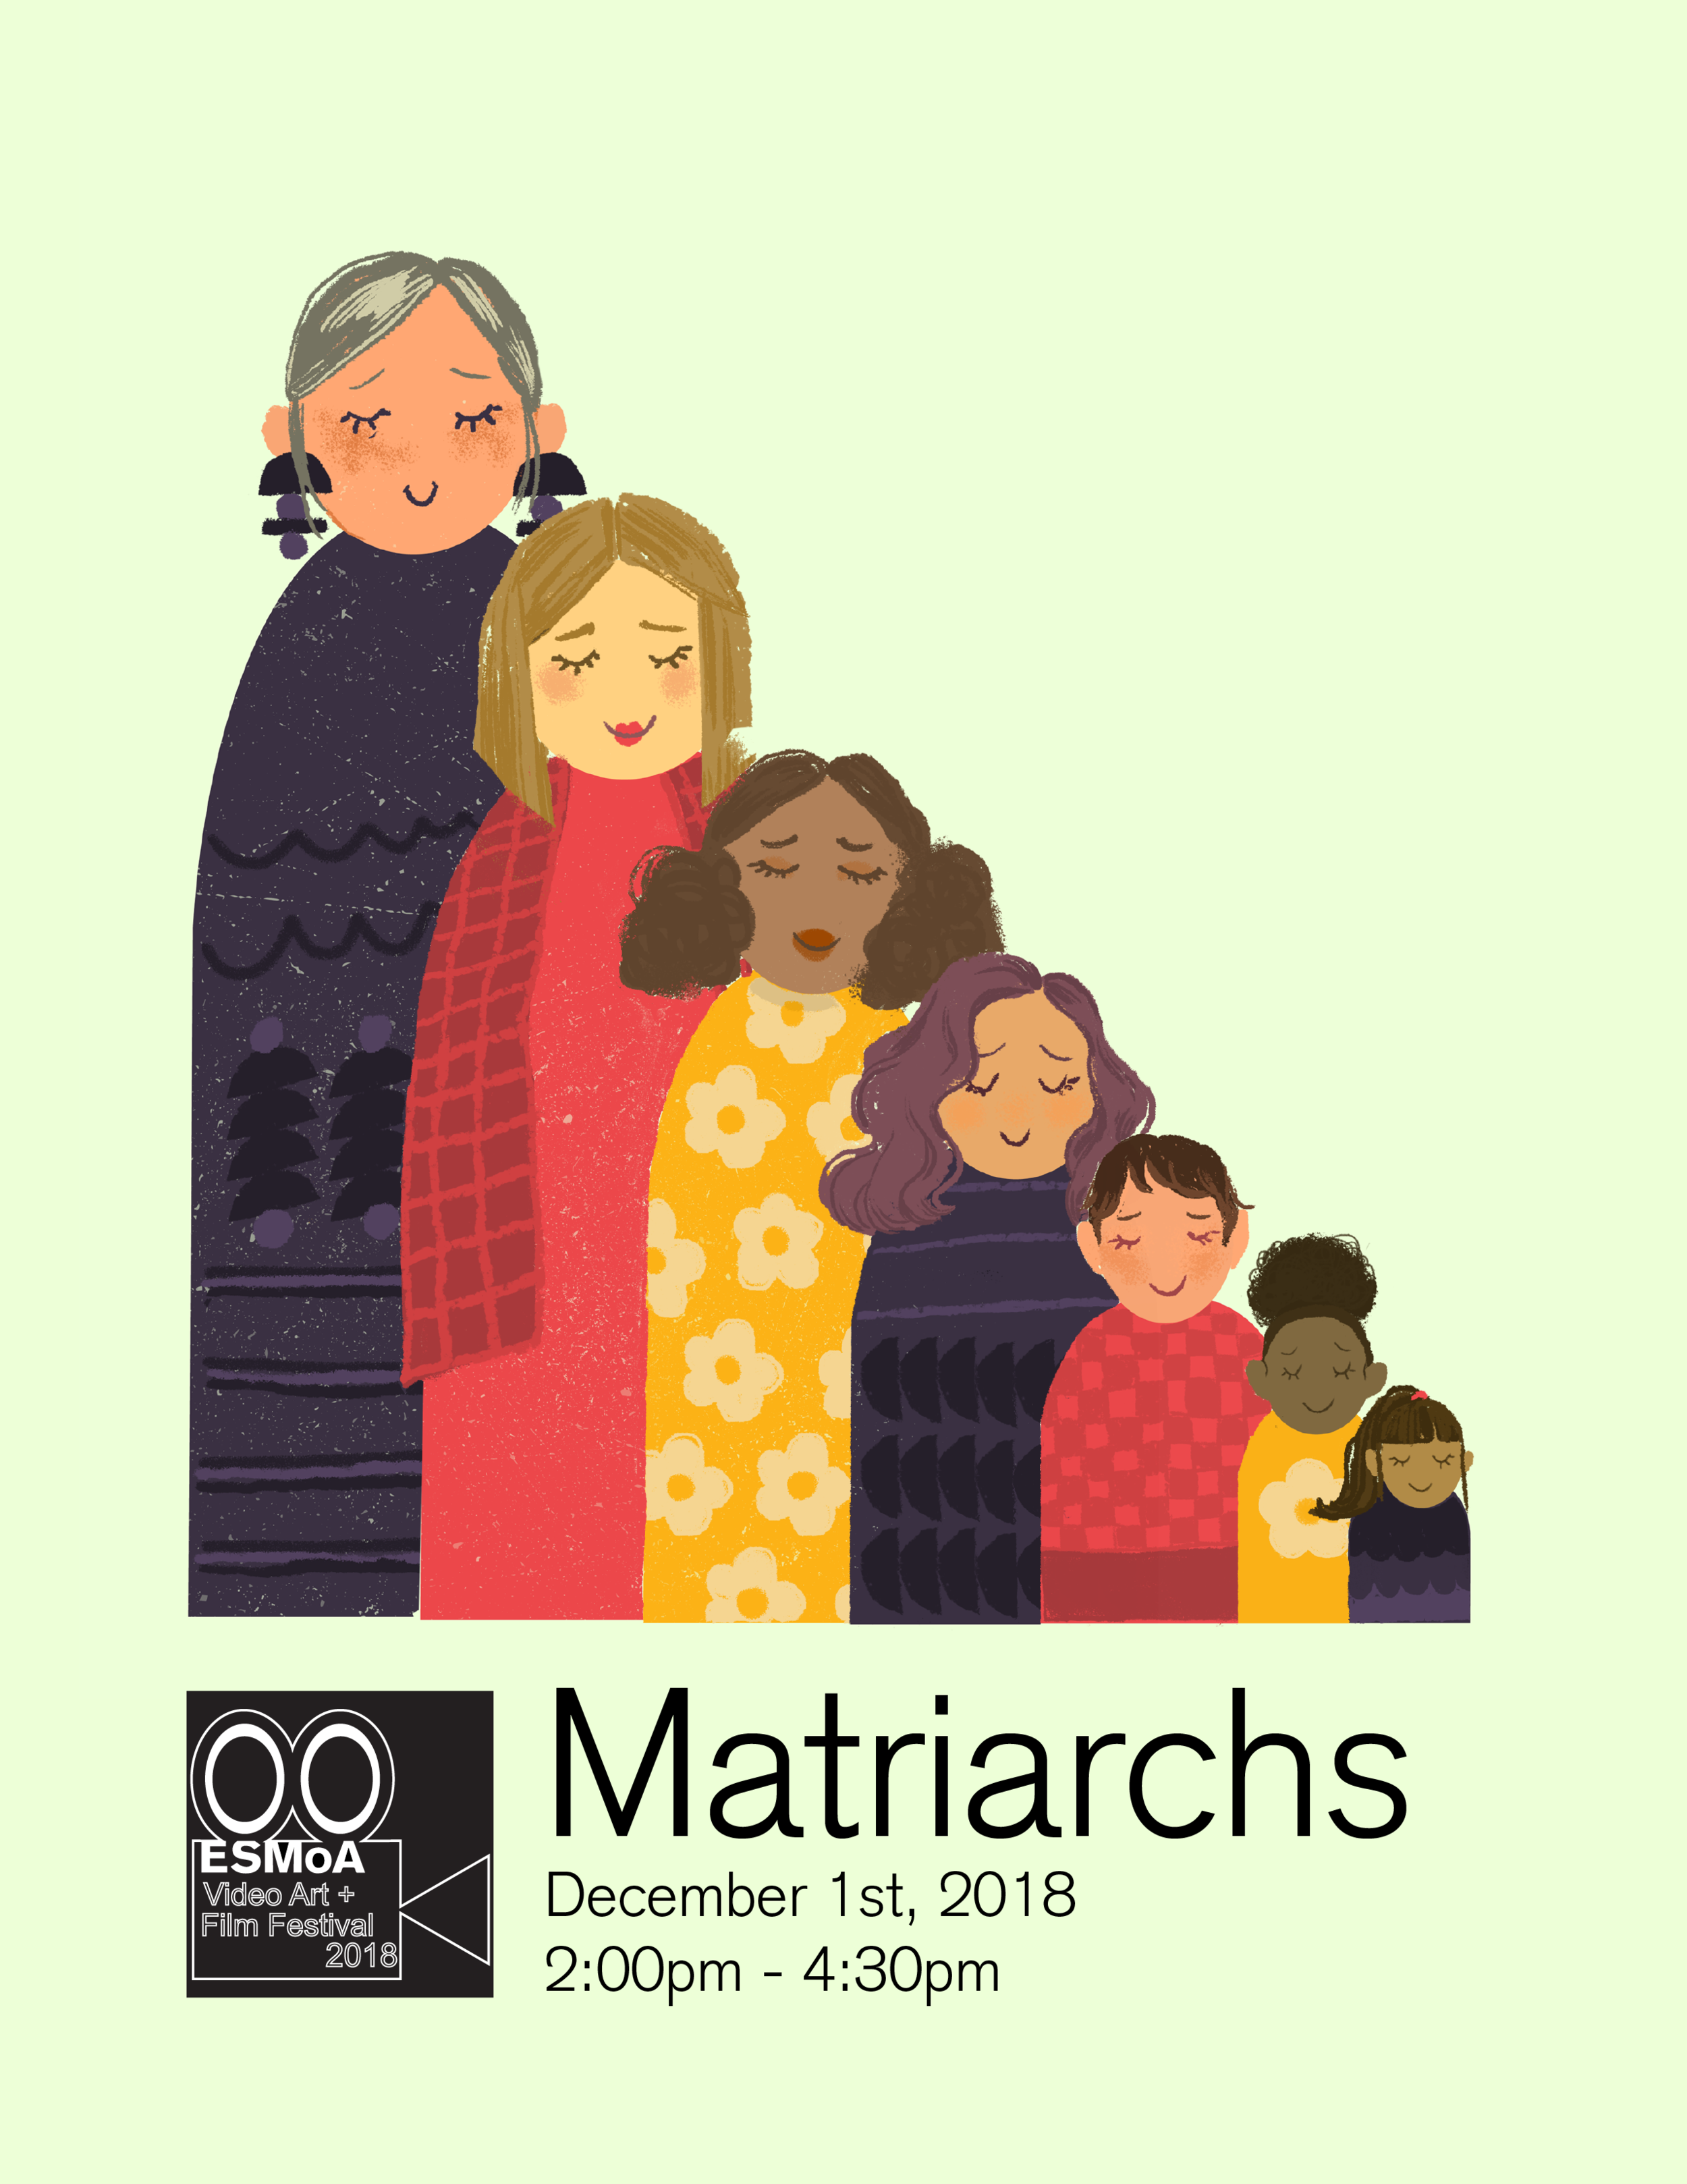 matriarchscolor-02.png